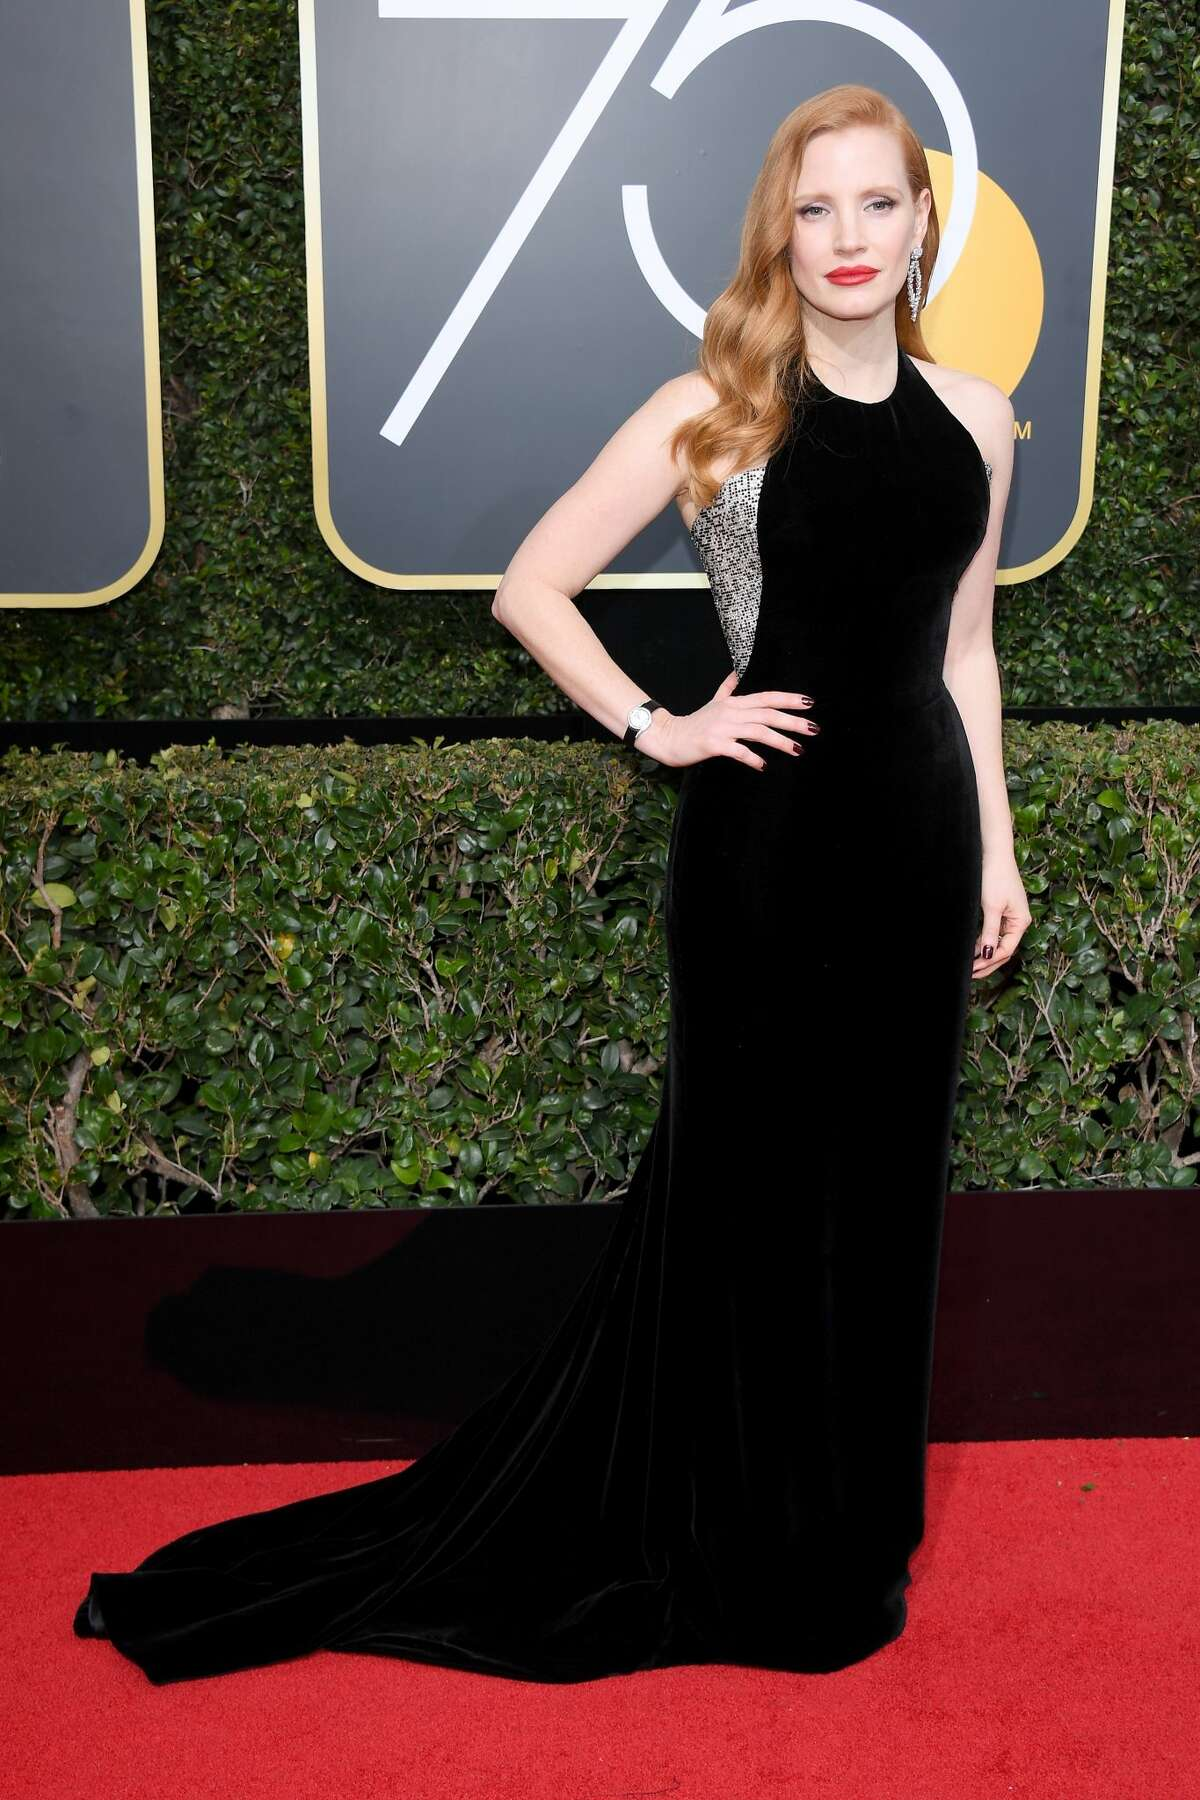 Best: Jessica Chastain's gown resembles Blake Lively's Golden Globe gown from last year (look it up), but she still looks terrific.